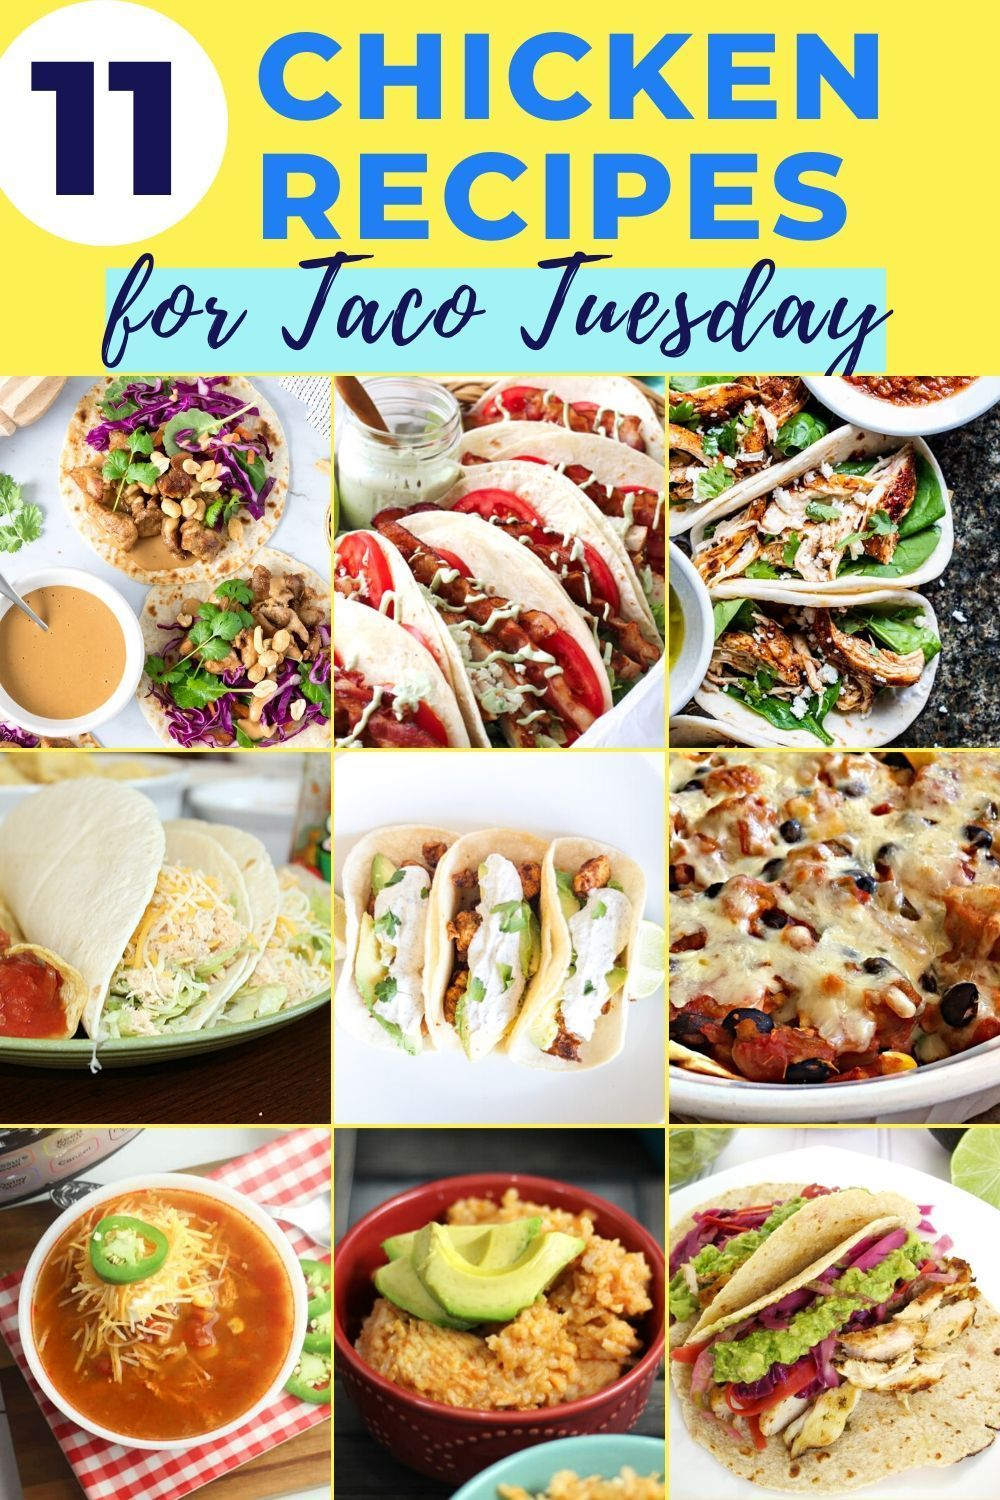 Chicken Recipes for Taco Tuesday | Fourganic Sisters